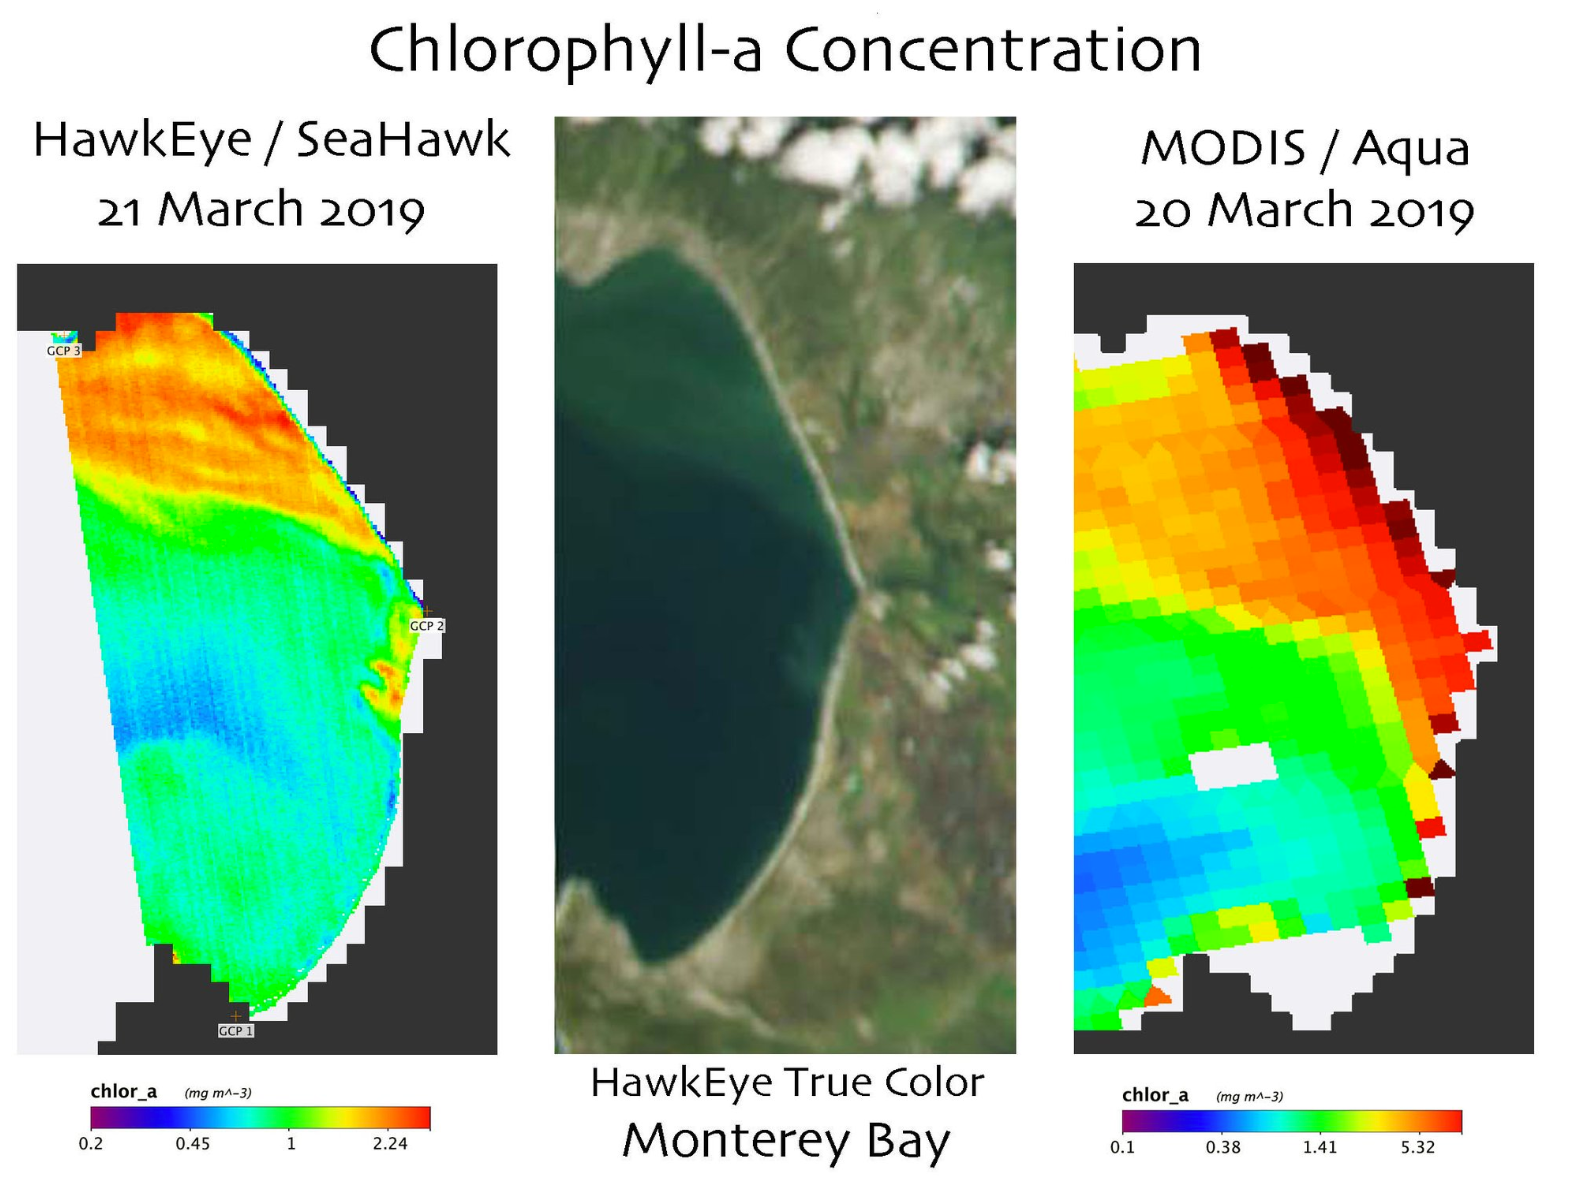 Left: Scaled chlorophyll-a retrievals for Monterey Bay, as measured by the HawkEye instrument on Seahawk. Center: A True Color image of Monetery Bay, captured by HawkEye. Right: Chlorophyll-a data captured by MODIS/Aqua one day prior.